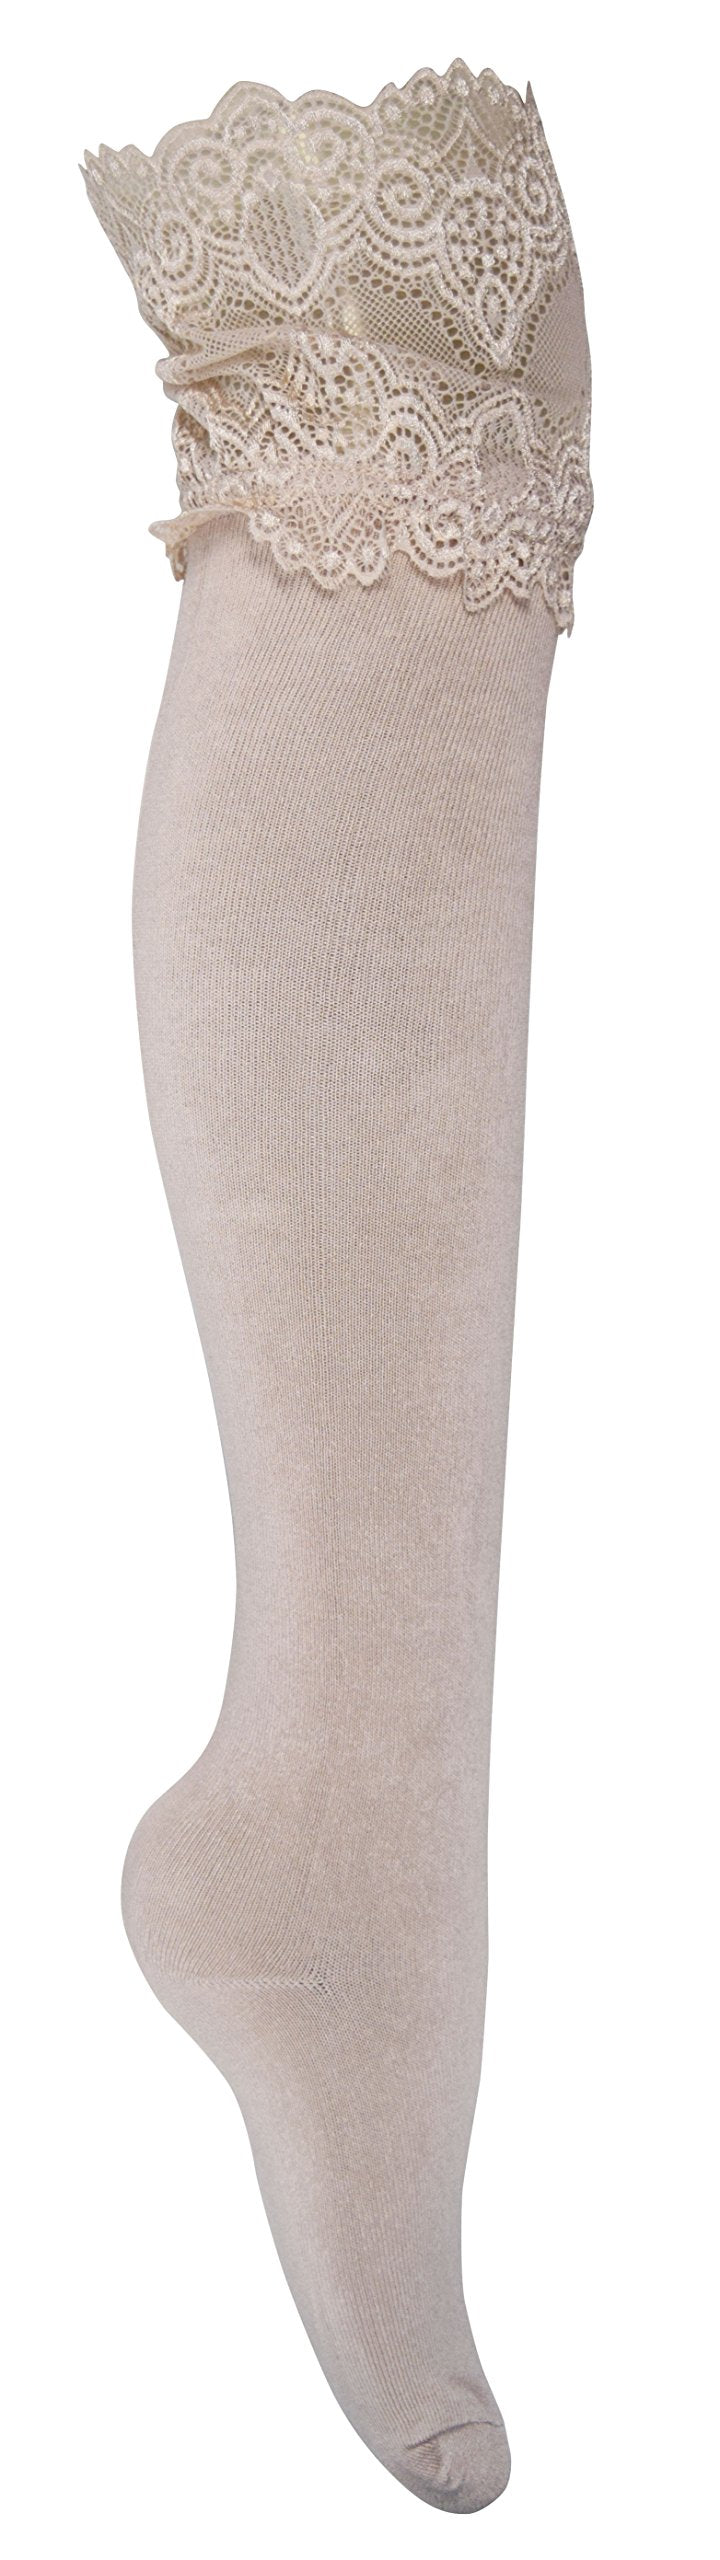 Stylish High Wide-Lace Jersey Knit Knee-High Cotton Boot Socks